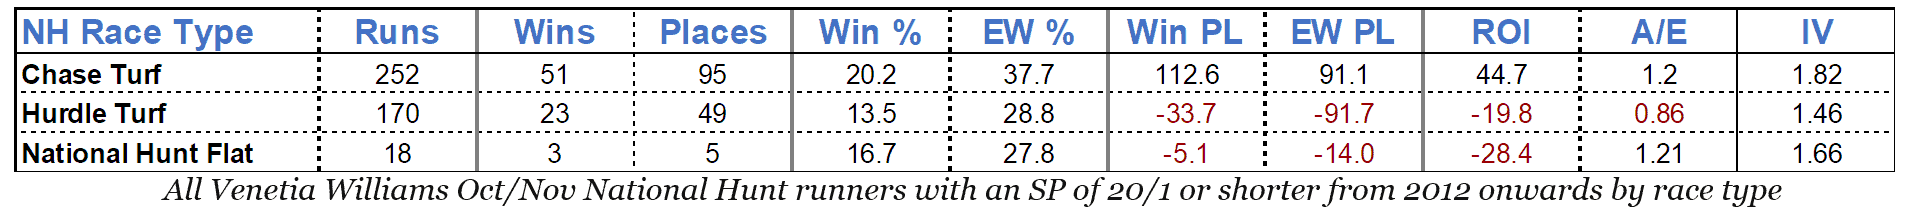 All Venetia Williams Oct/Nov National Hunt runners with an SP of 20/1 or shorter from 2012 onwards by race type